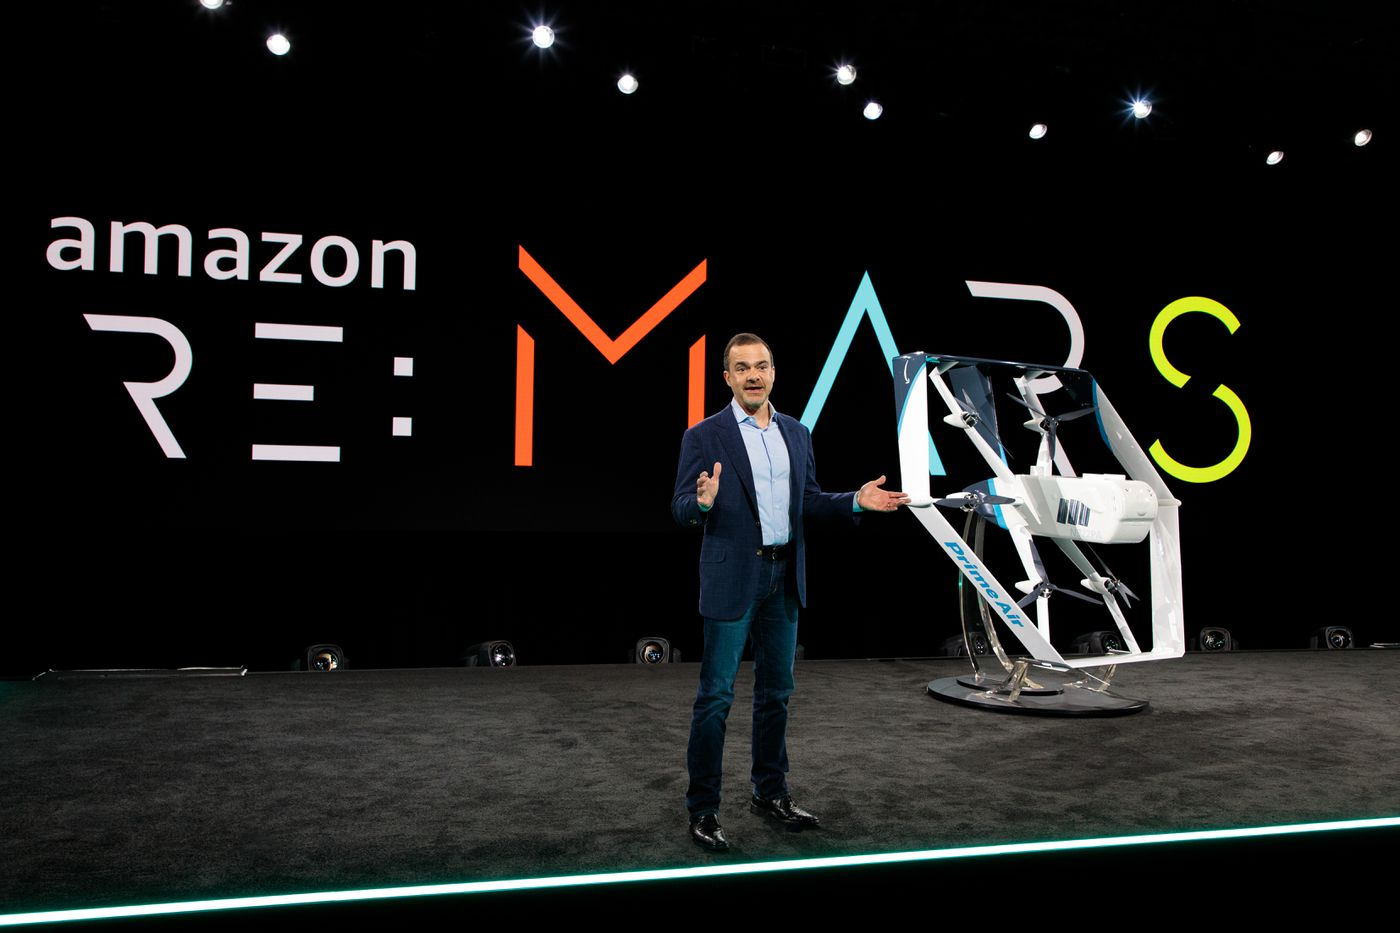 Here's Amazon's new transforming Prime Air delivery drone - The Verge